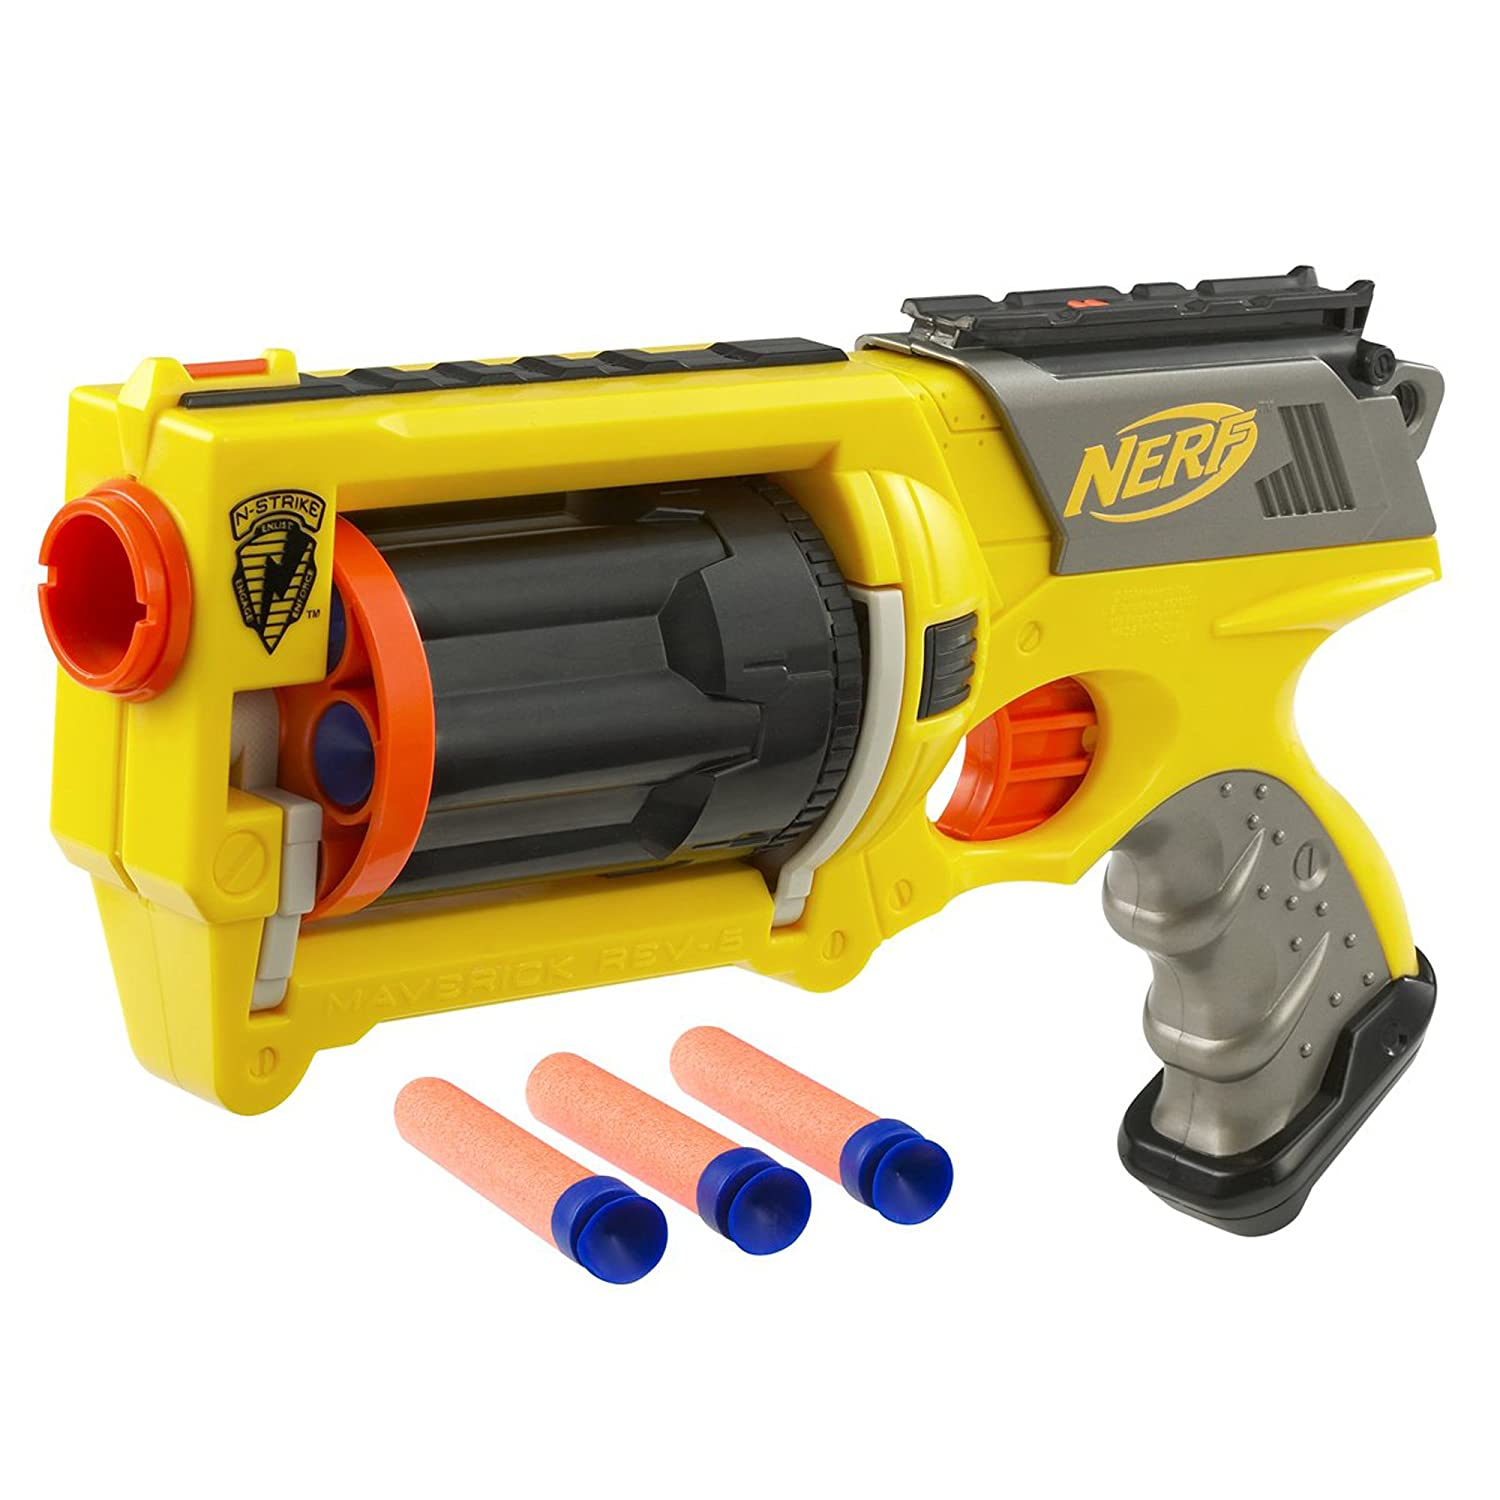 A brief look at some of the best Nerf guns for girls